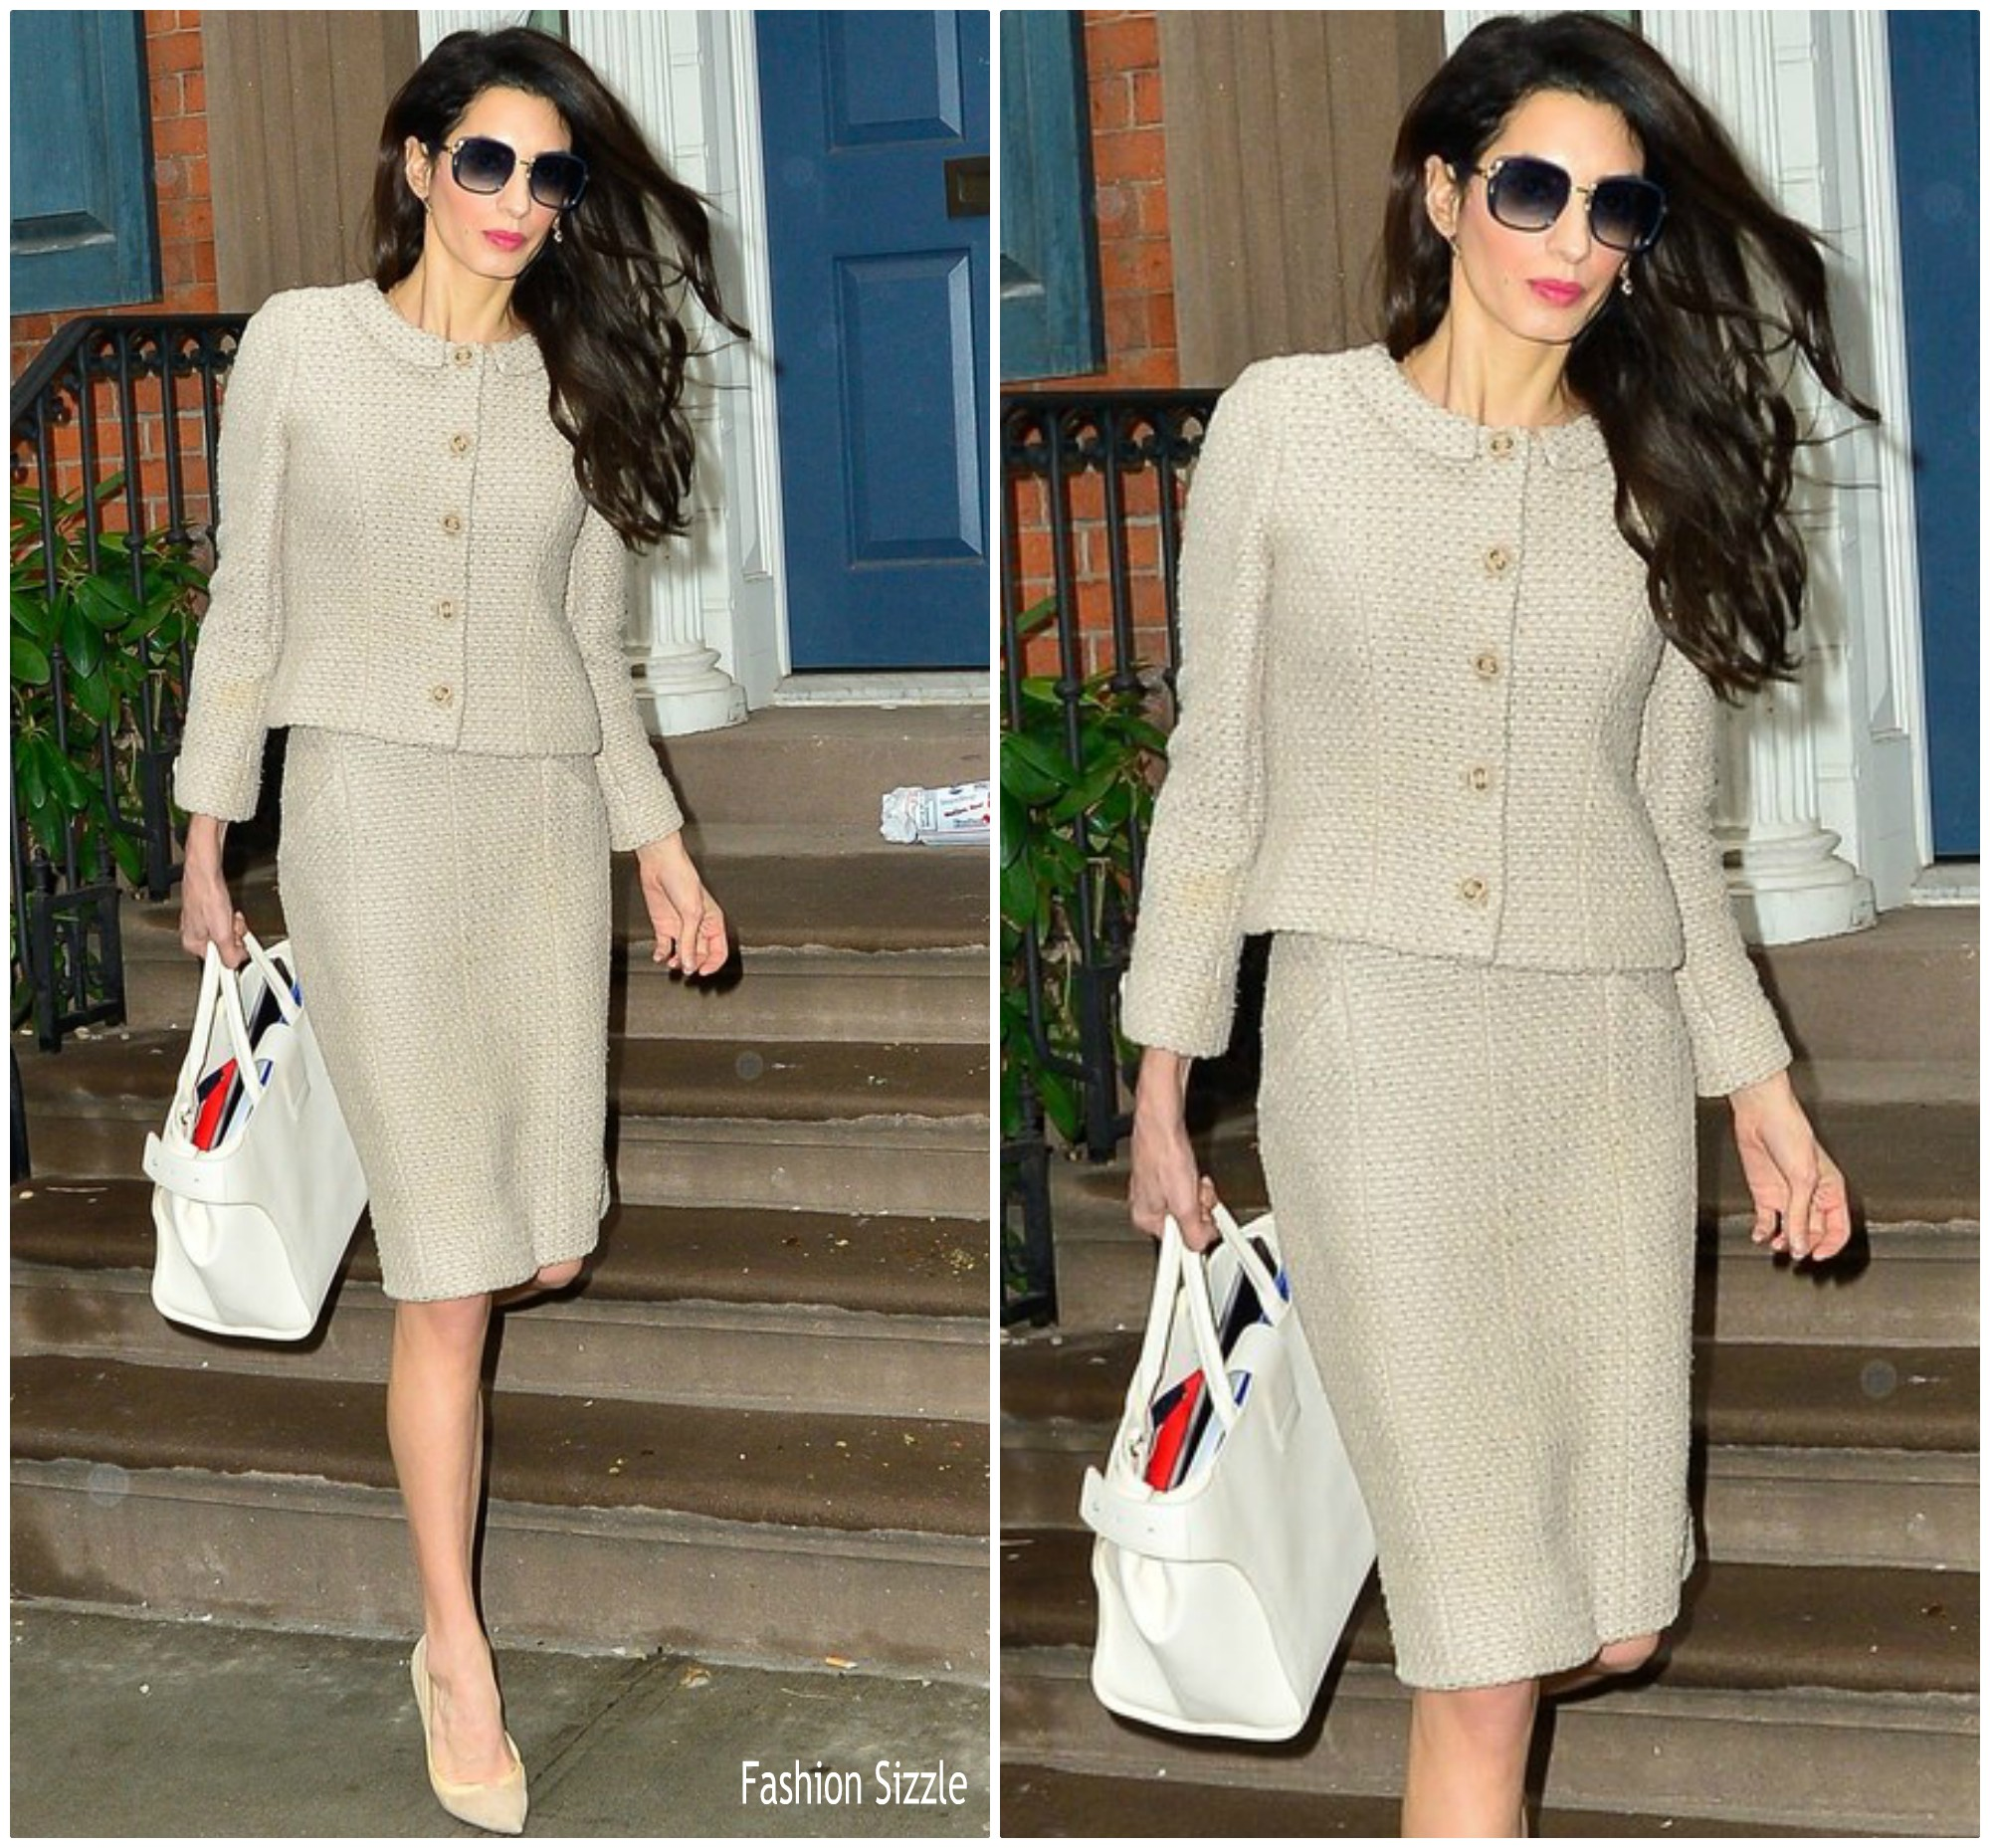 amal-clooney-in-vinatge-chanel-out-in-new-york-city